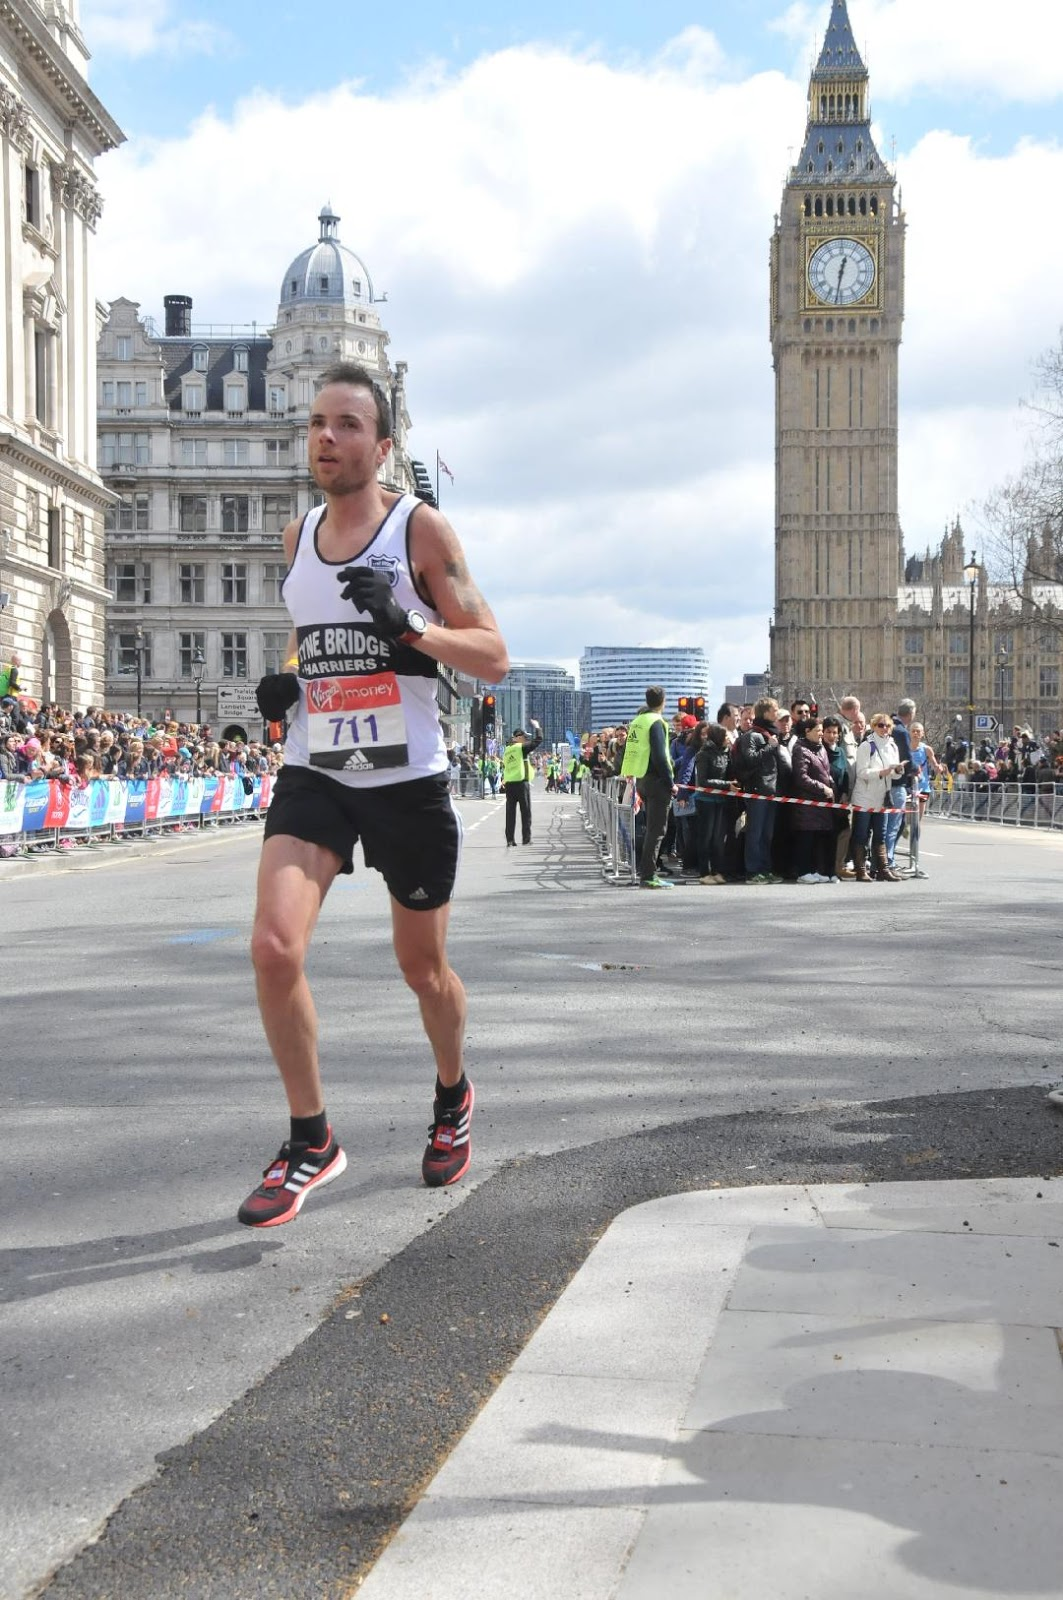 822e4db8d5d4d3 CAPITAL OUTING  Under the Shadow of Big Ben Terry takes to the streets of  London for his one-and-only marathon so far